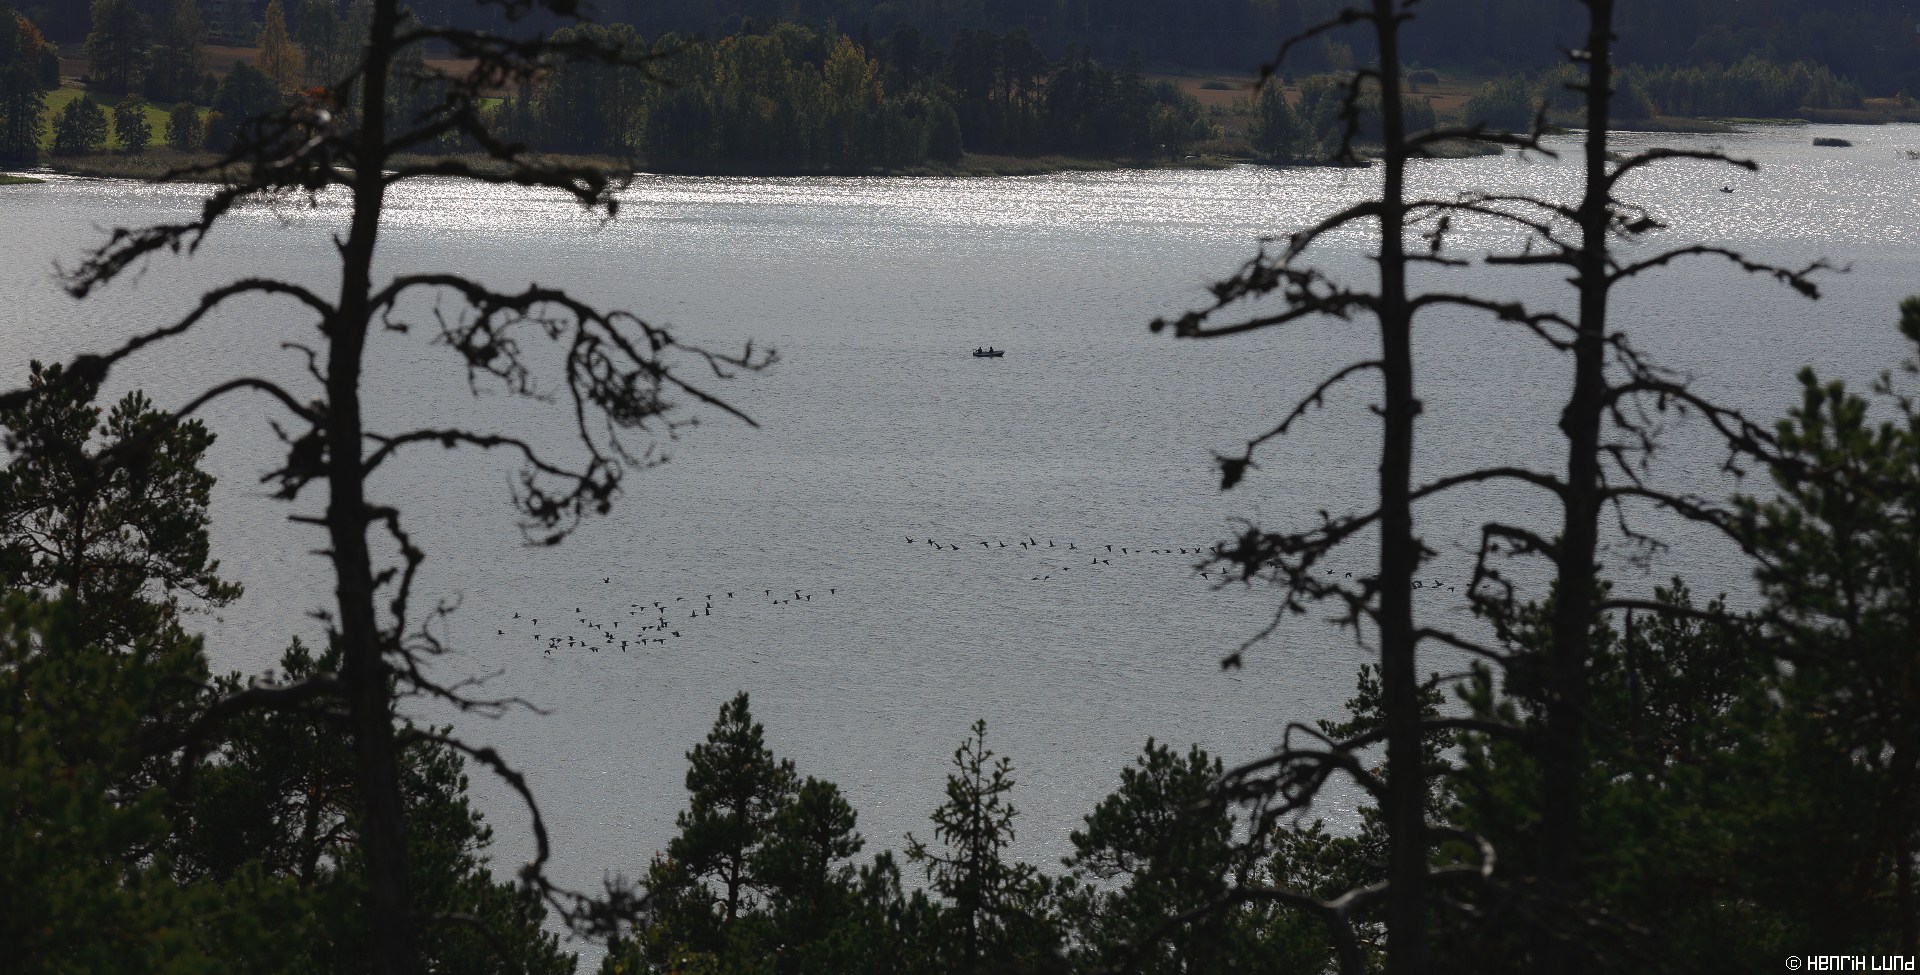 Migrating geese approaching for landing with fishermen observing close by. Lappträsk, Finland. September 2015.